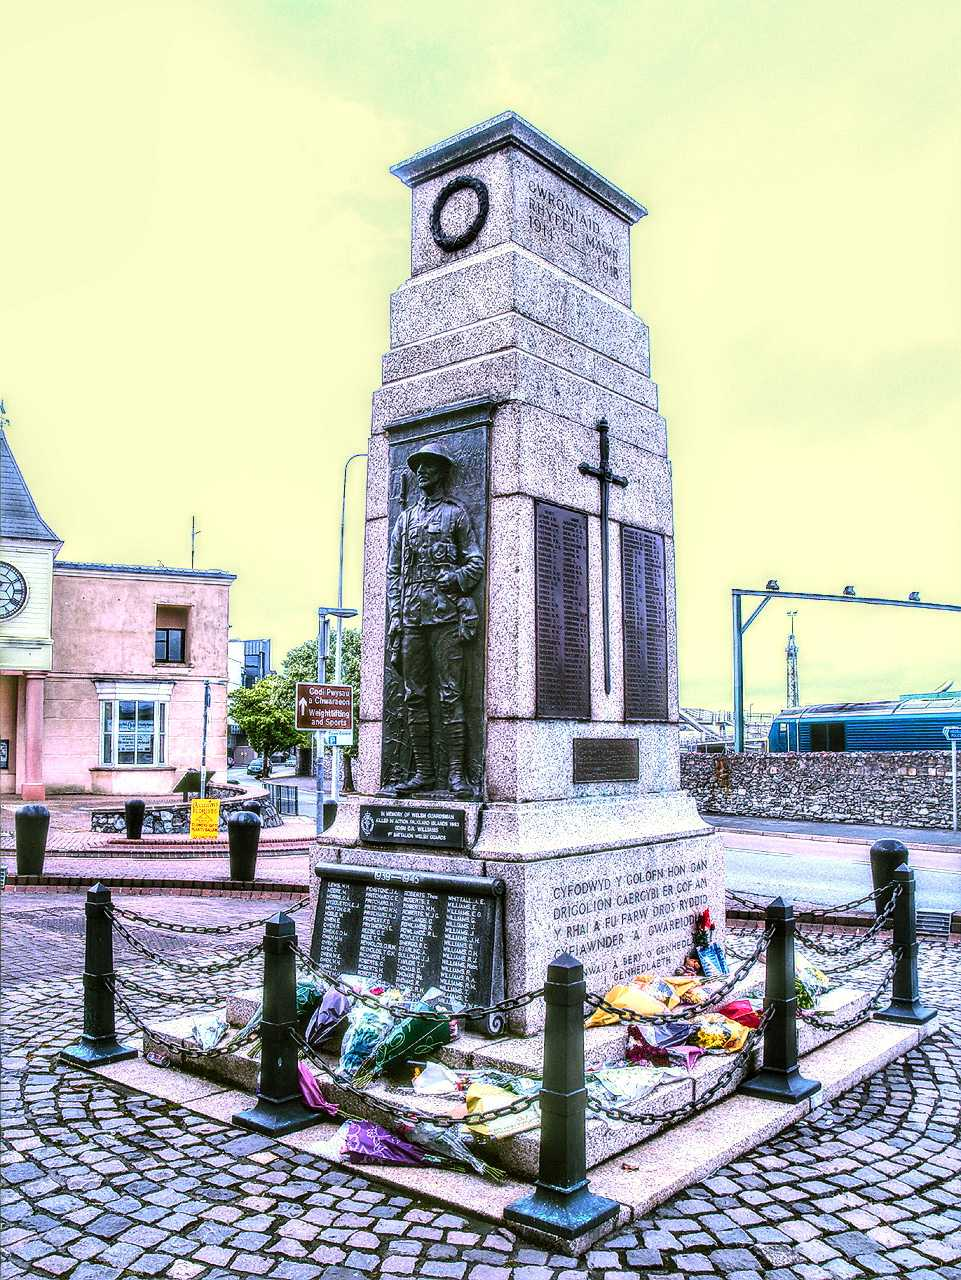 Holyhead Cenotaph - Flowers laid to express sympathy to the family of Drummer Lee Rigby, Royal Regiment of Fusiliers